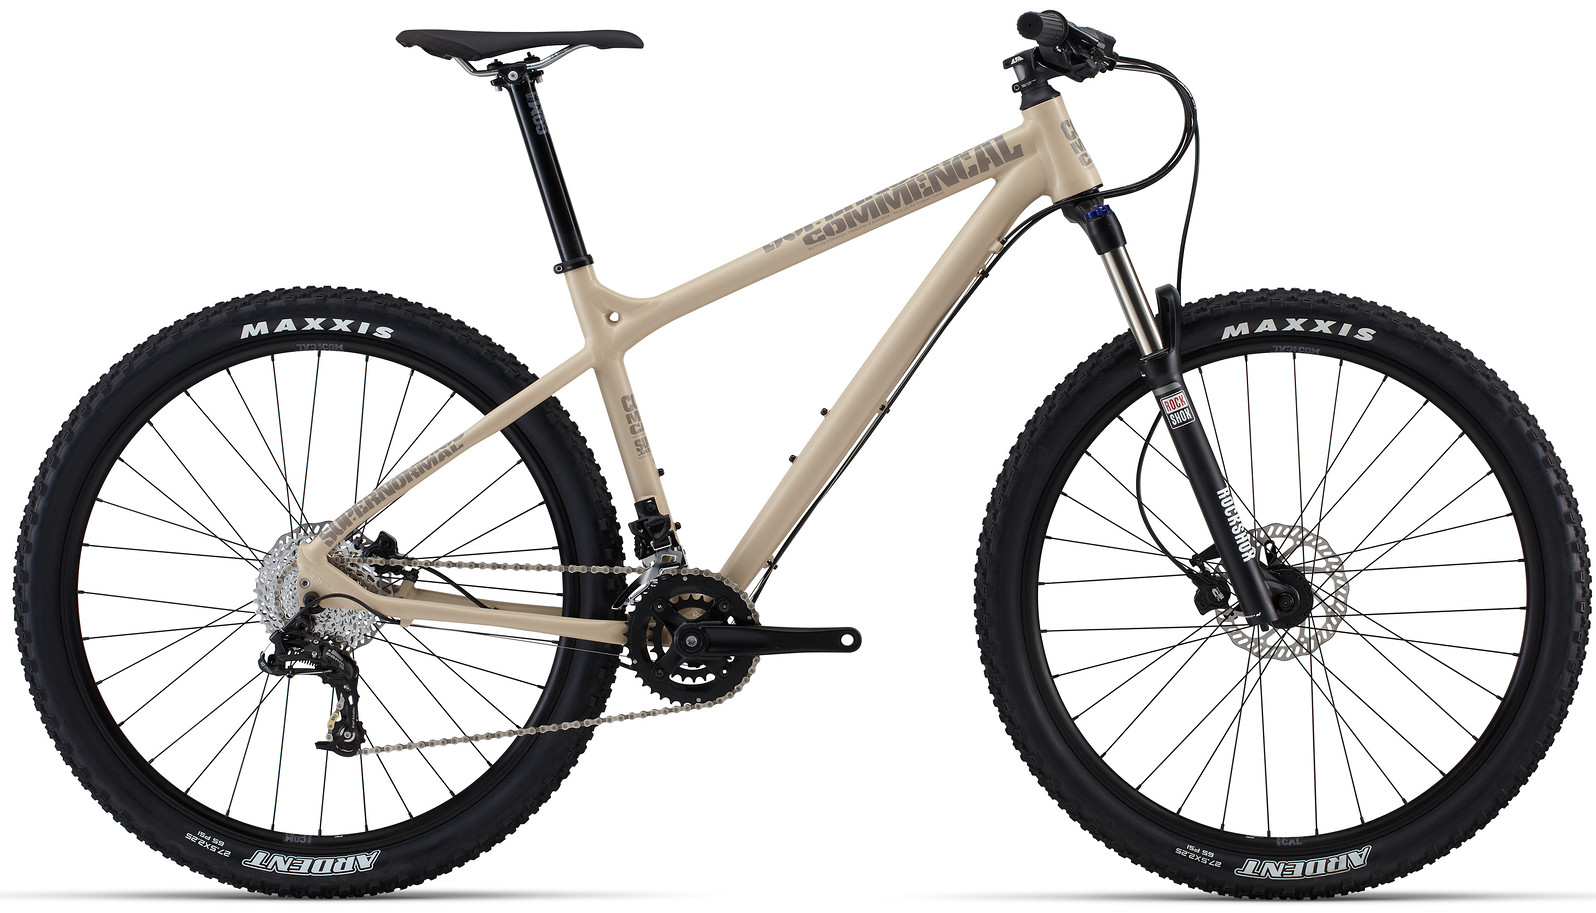 2014 Commencal Supernormal 2 Bike 14SUPERNOR2